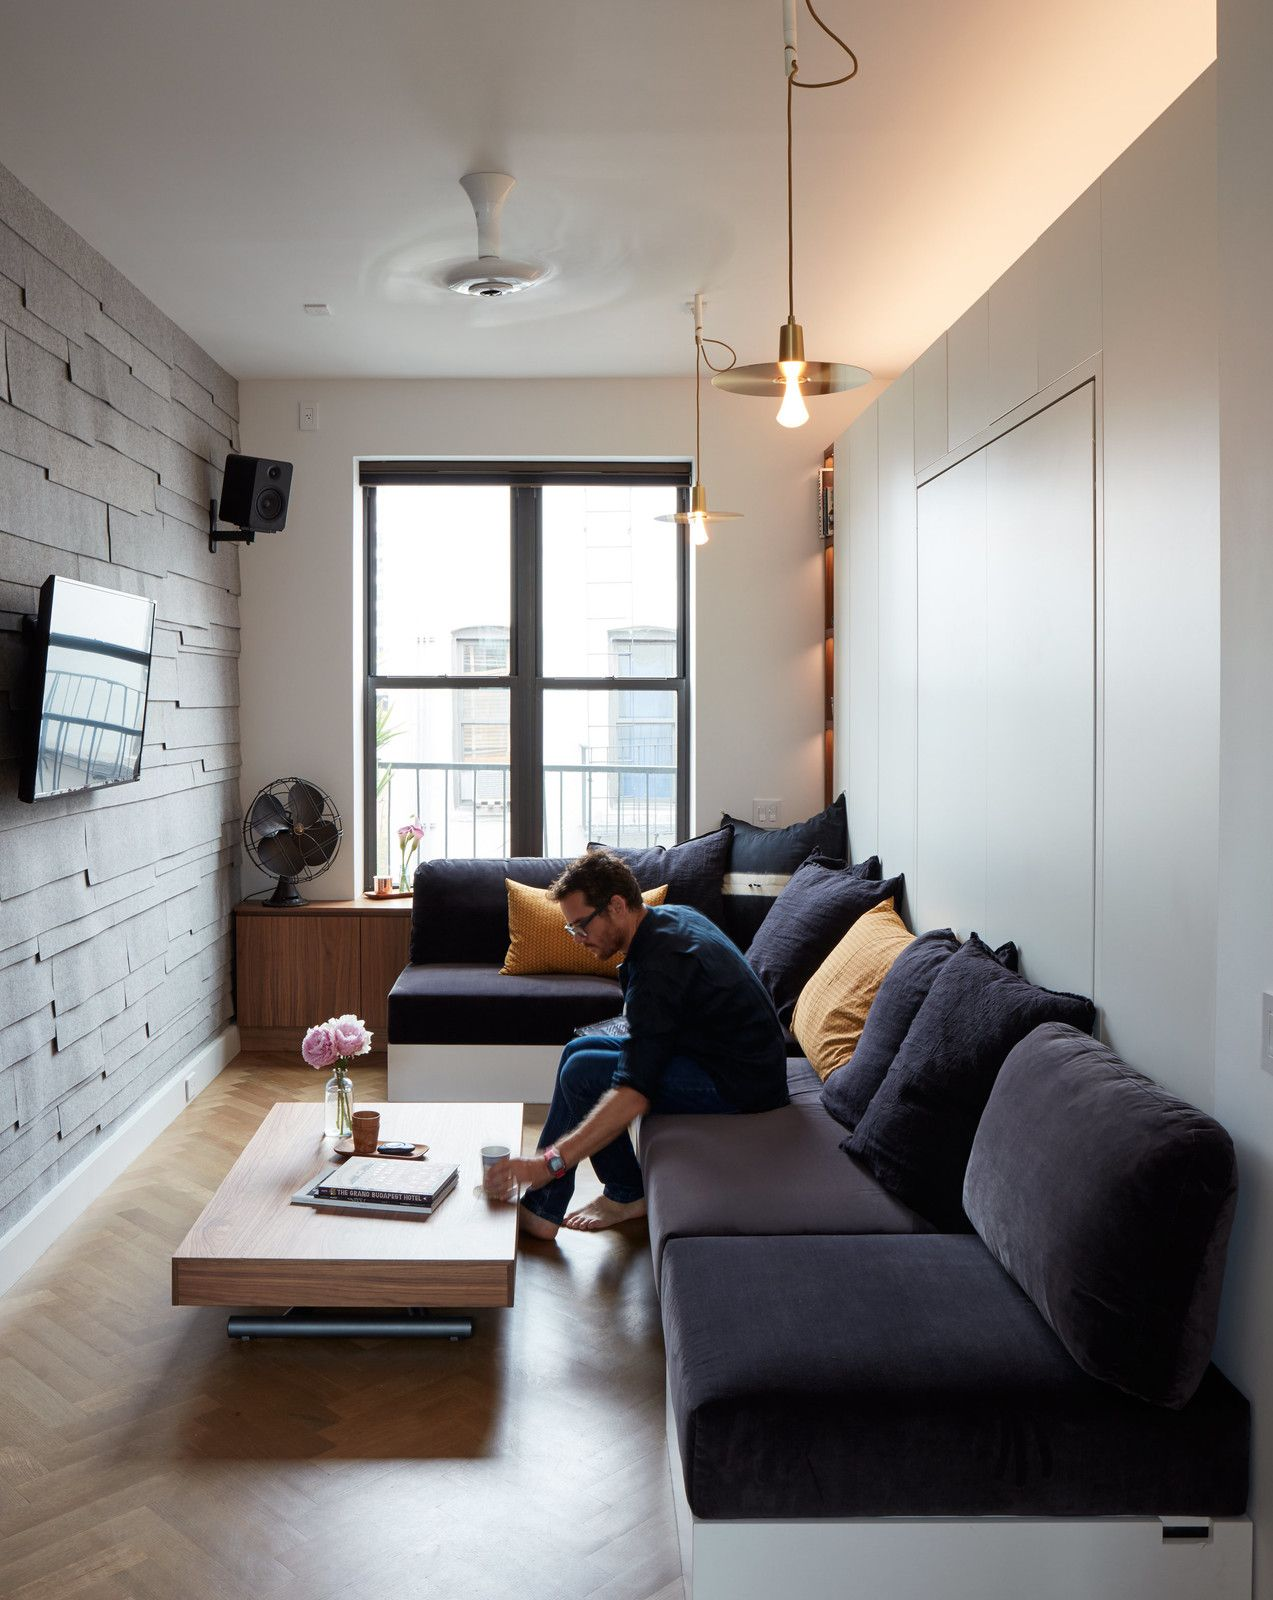 Small Space Living In A Soho Apartment Small Apartment Living Room Small Living Room Decor Small Living Room Design